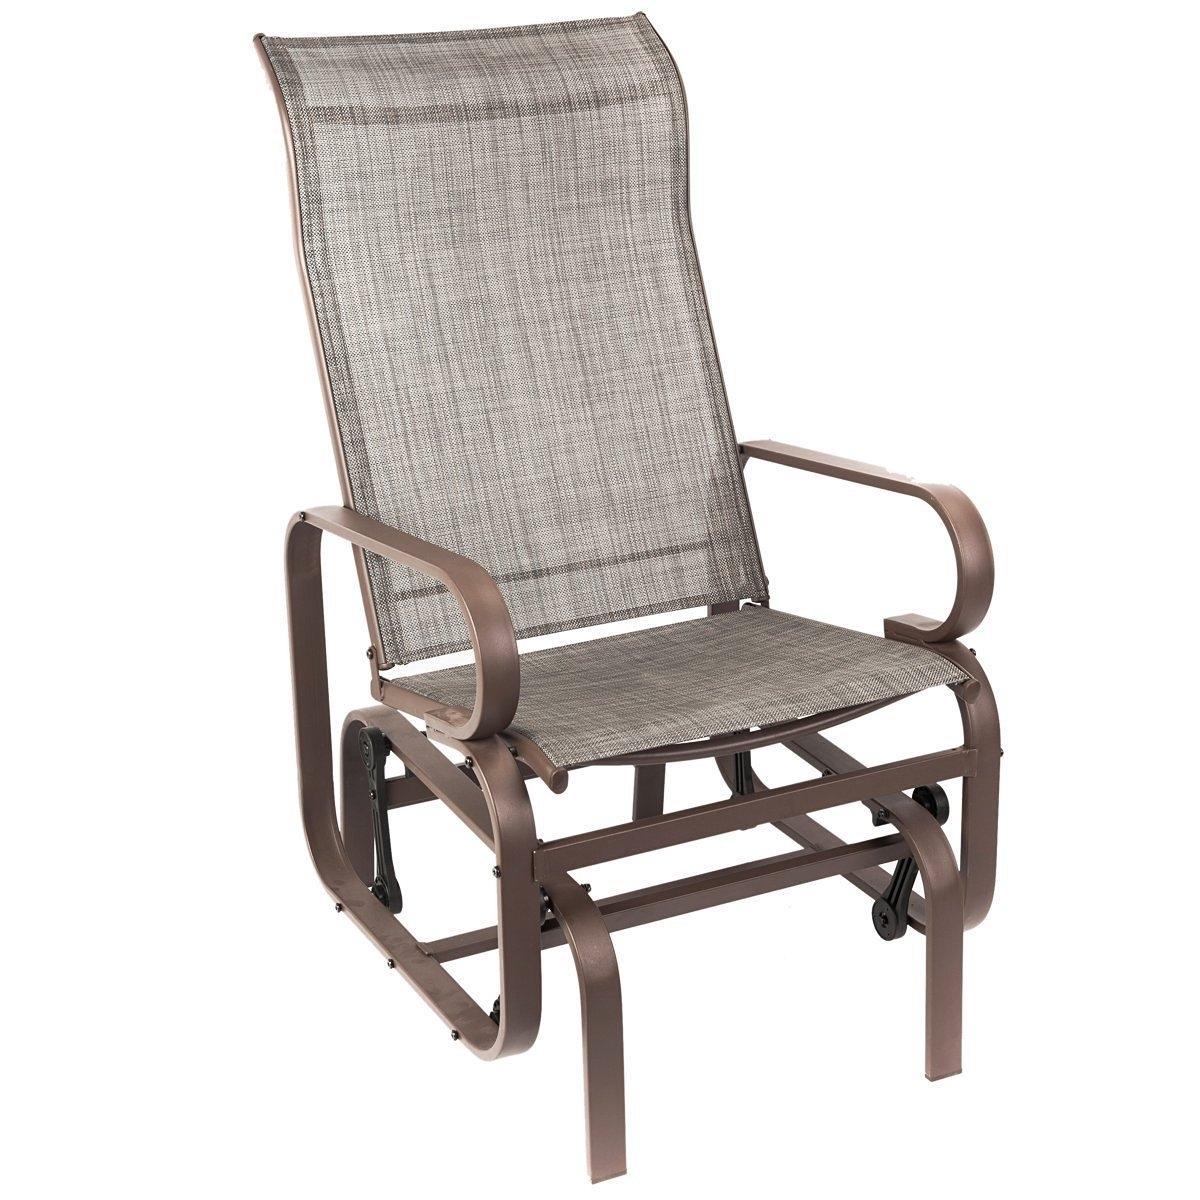 Rocking Chairs For Outdoors Inside Preferred Naturefun Outdoor Patio Rocker Chair, Balcony Glider Rocking Lounge (View 5 of 20)